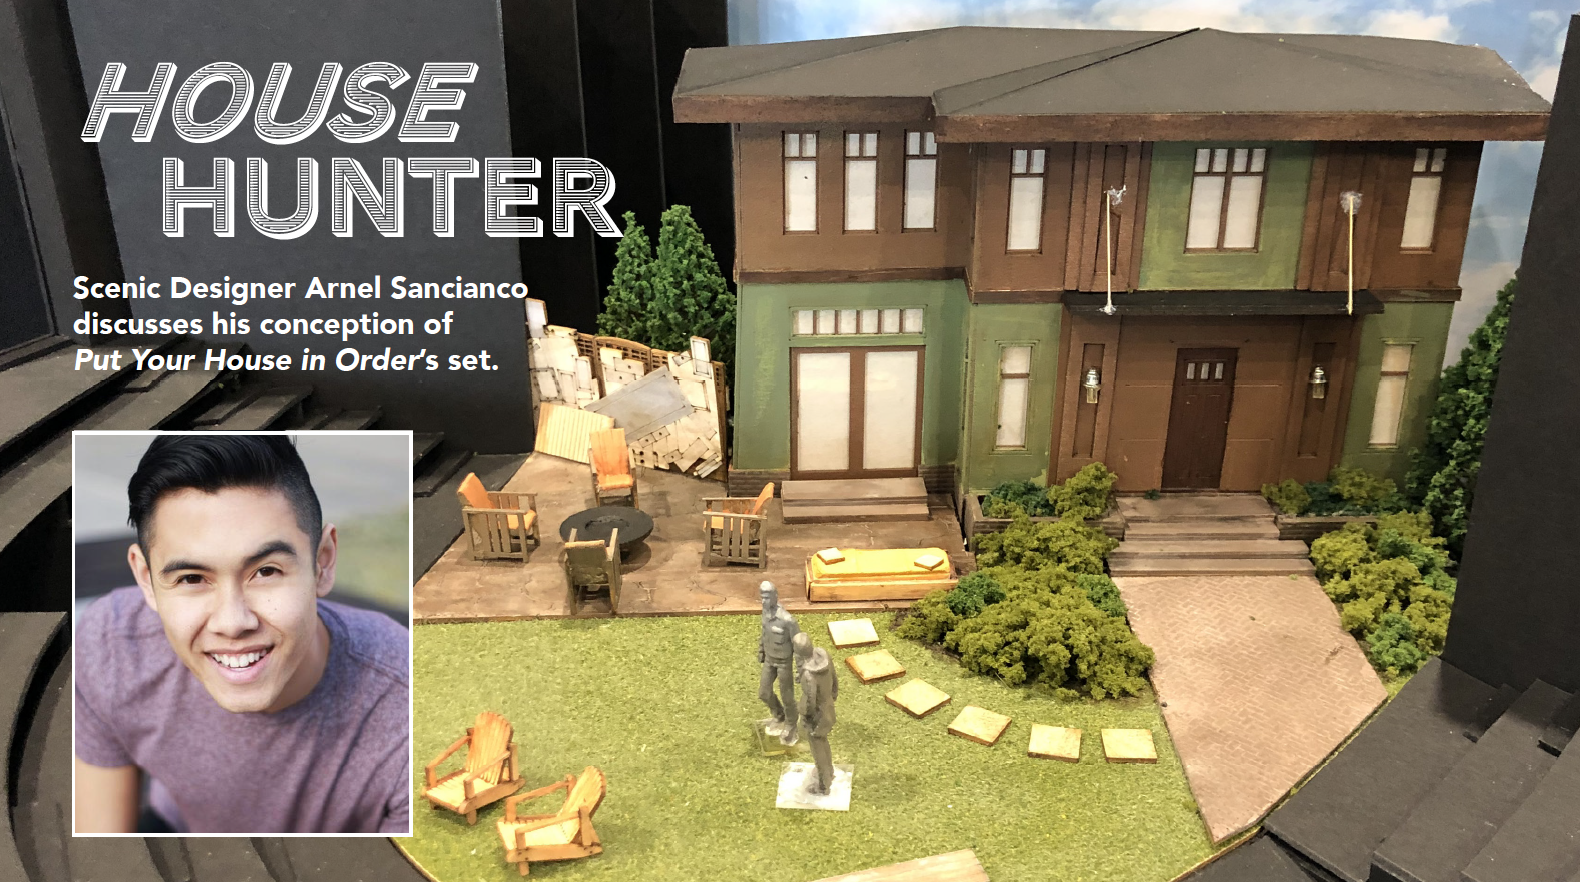 House Hunter: Scenic Designer Arnel Sancianco discusses his conception of PUT YOUR HOUSE IN ORDER's set